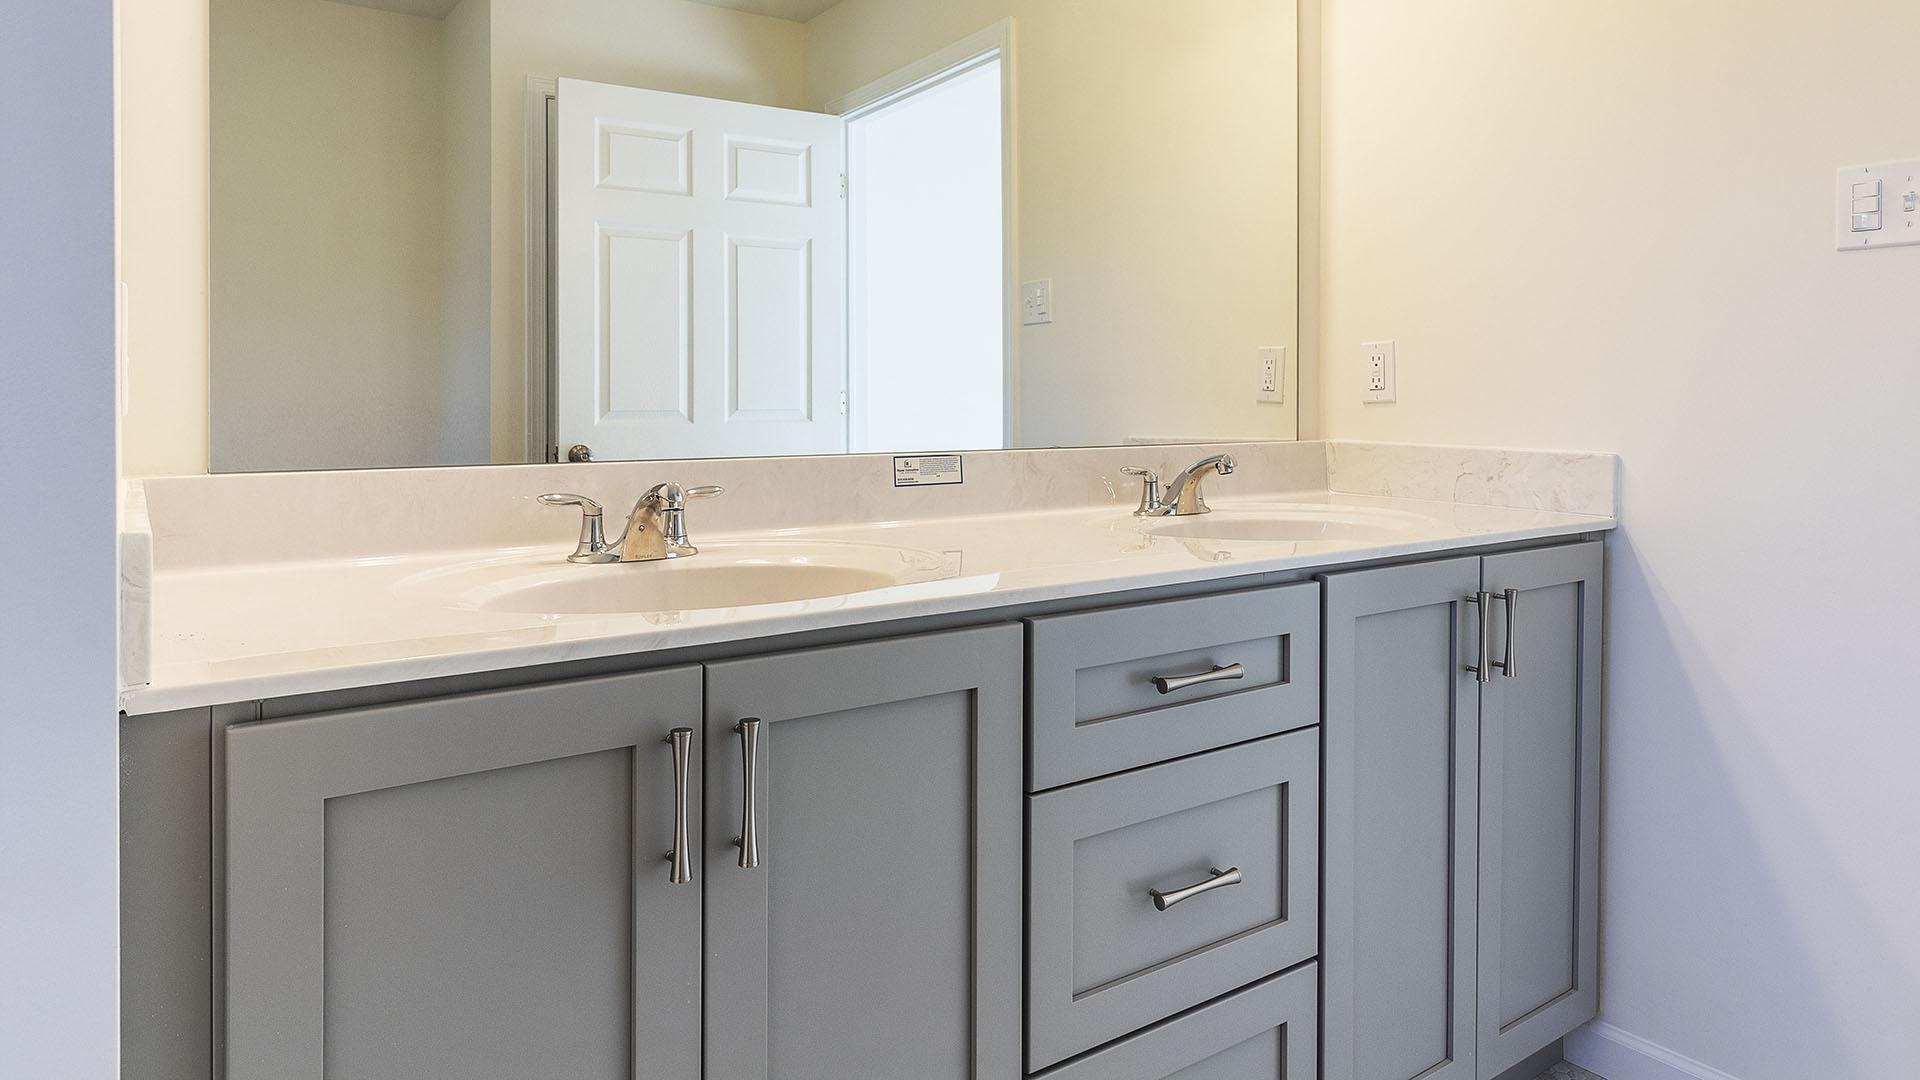 Bathroom featured in the Greenwood  By S & A Homes in Altoona, PA